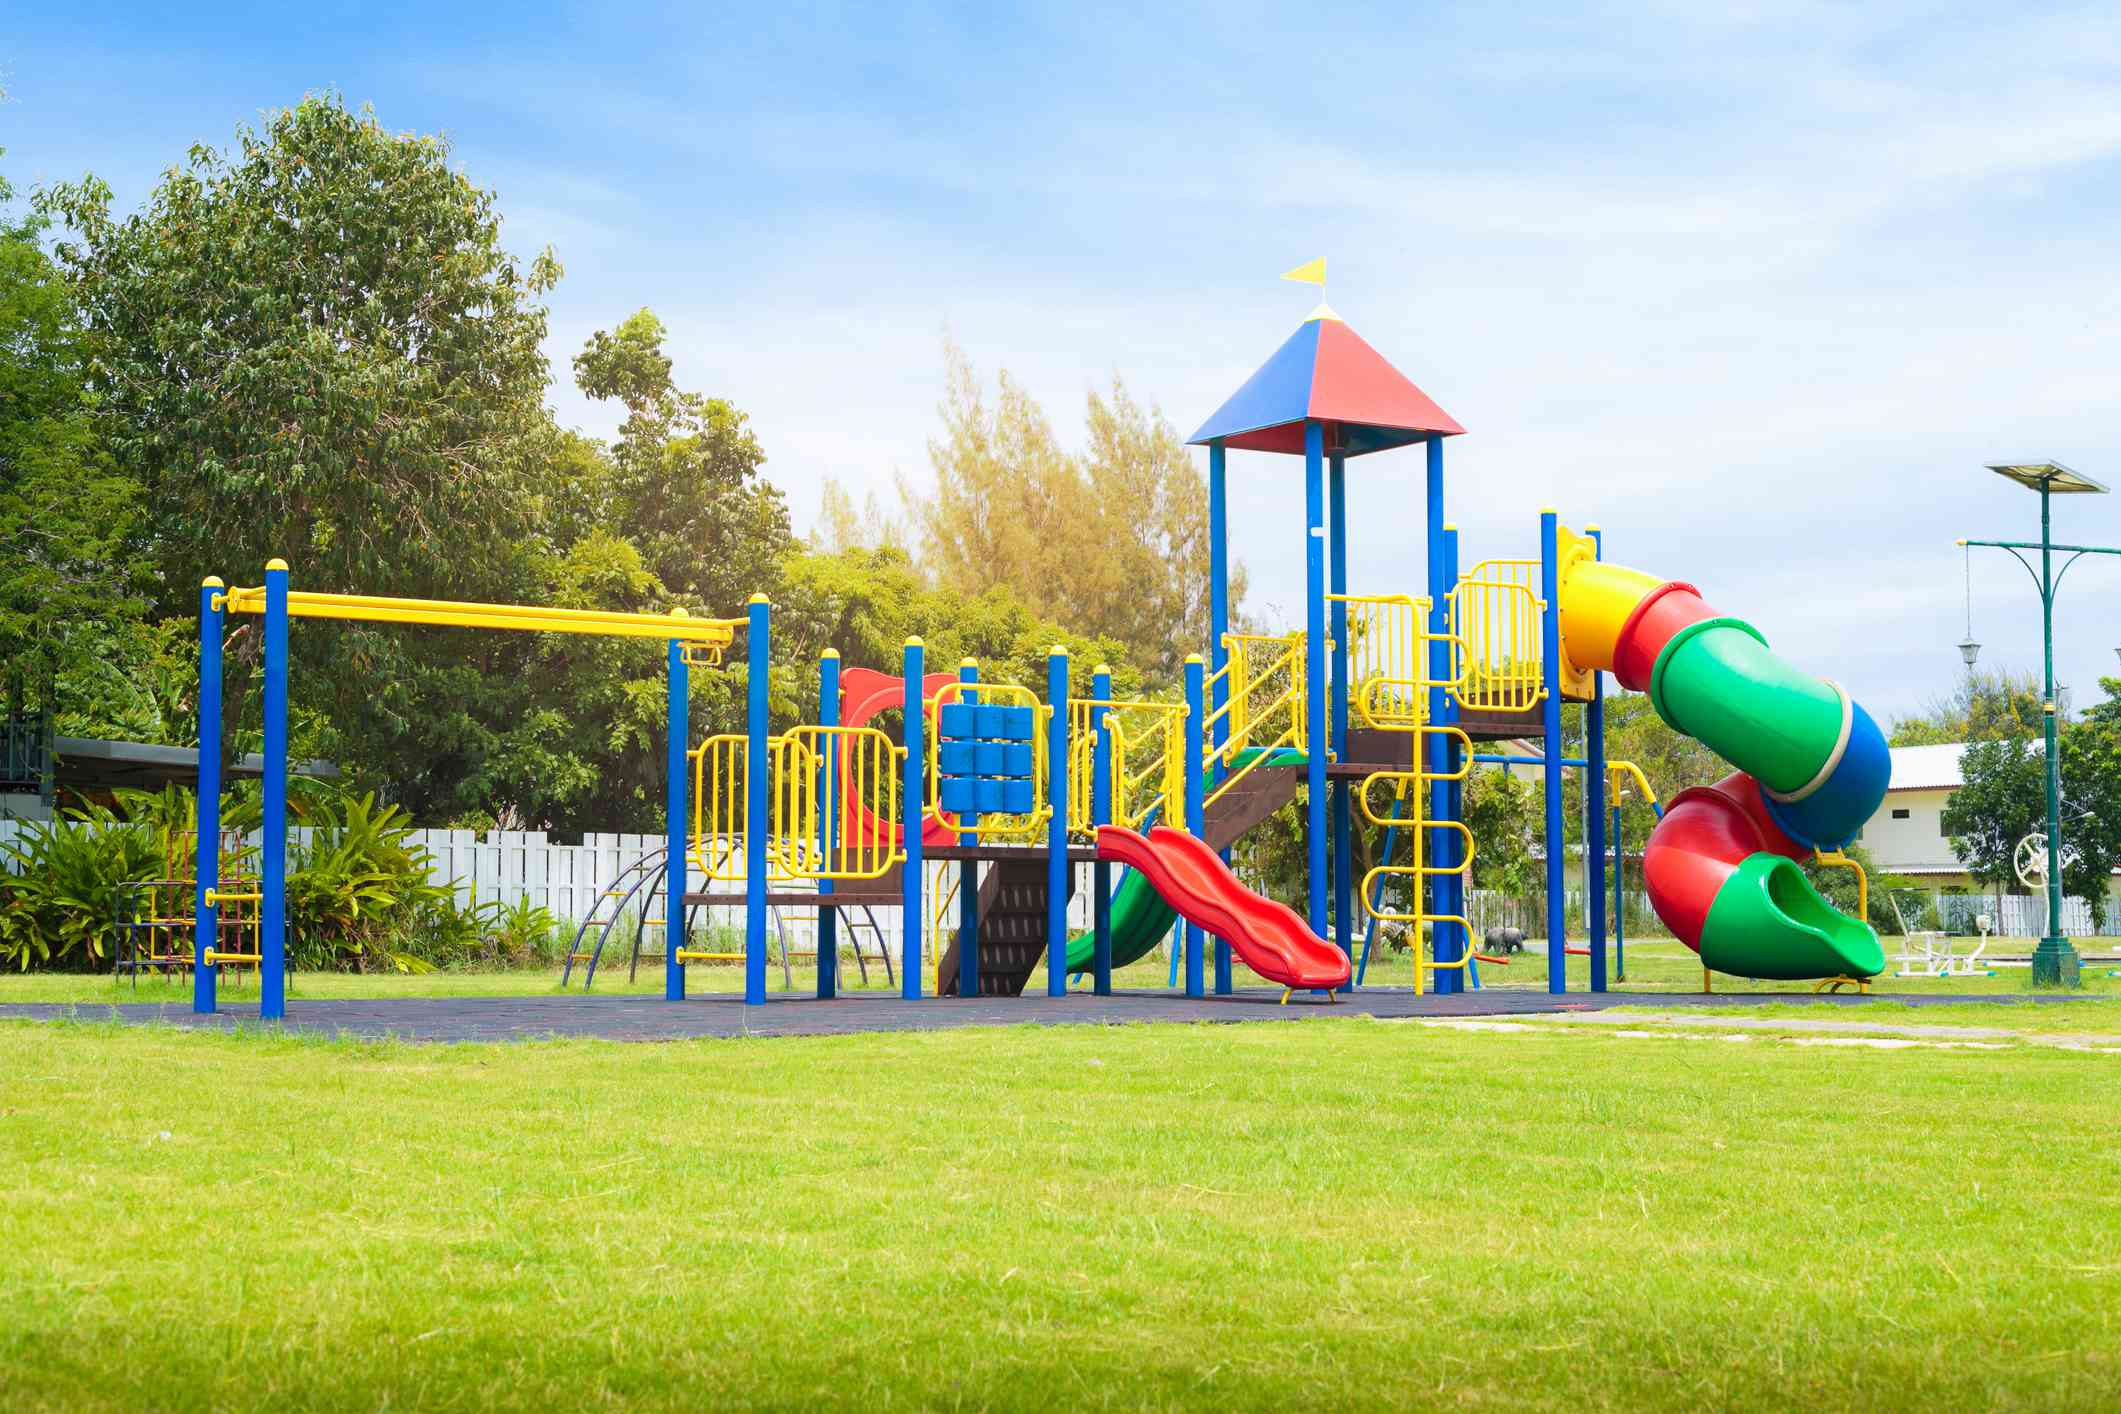 colorful playground equipment and grass